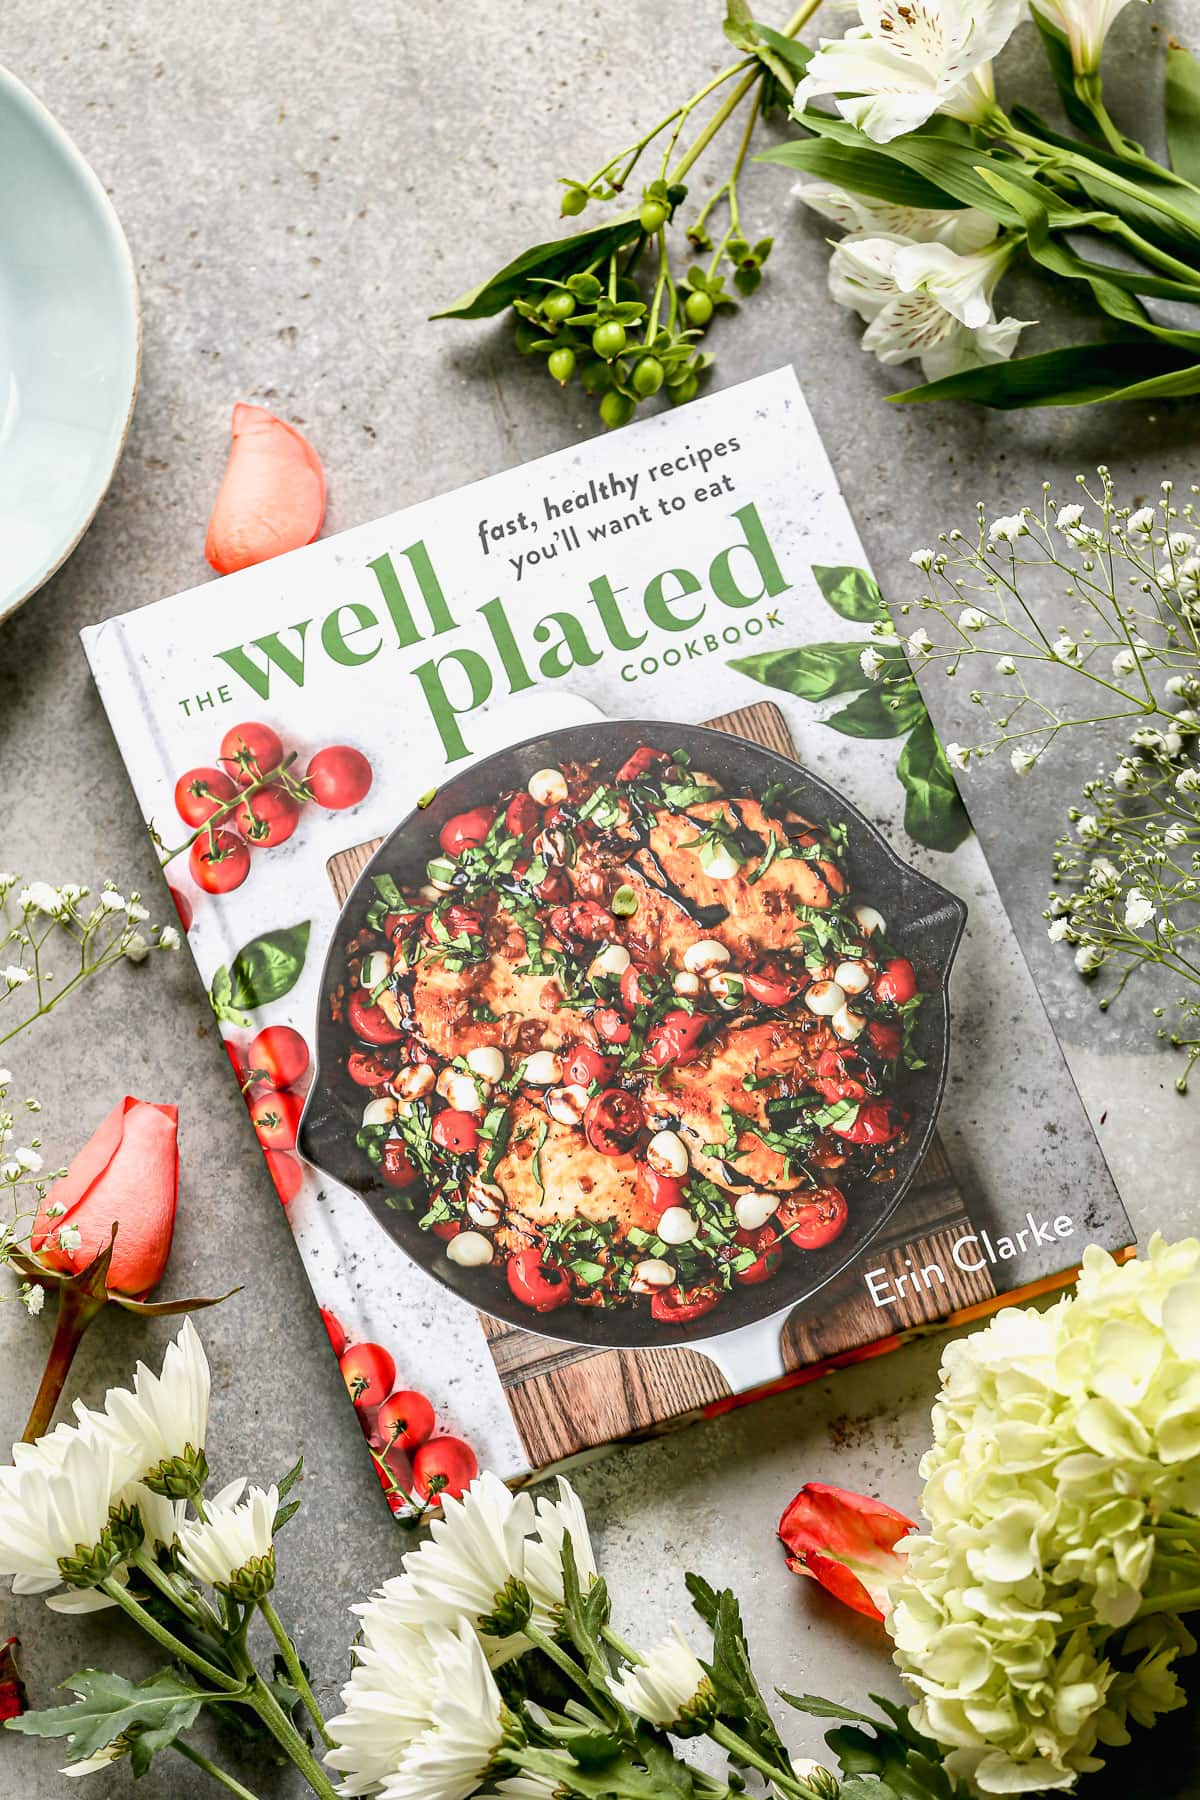 The Well Plated Cookbook surrounded by spring flowers